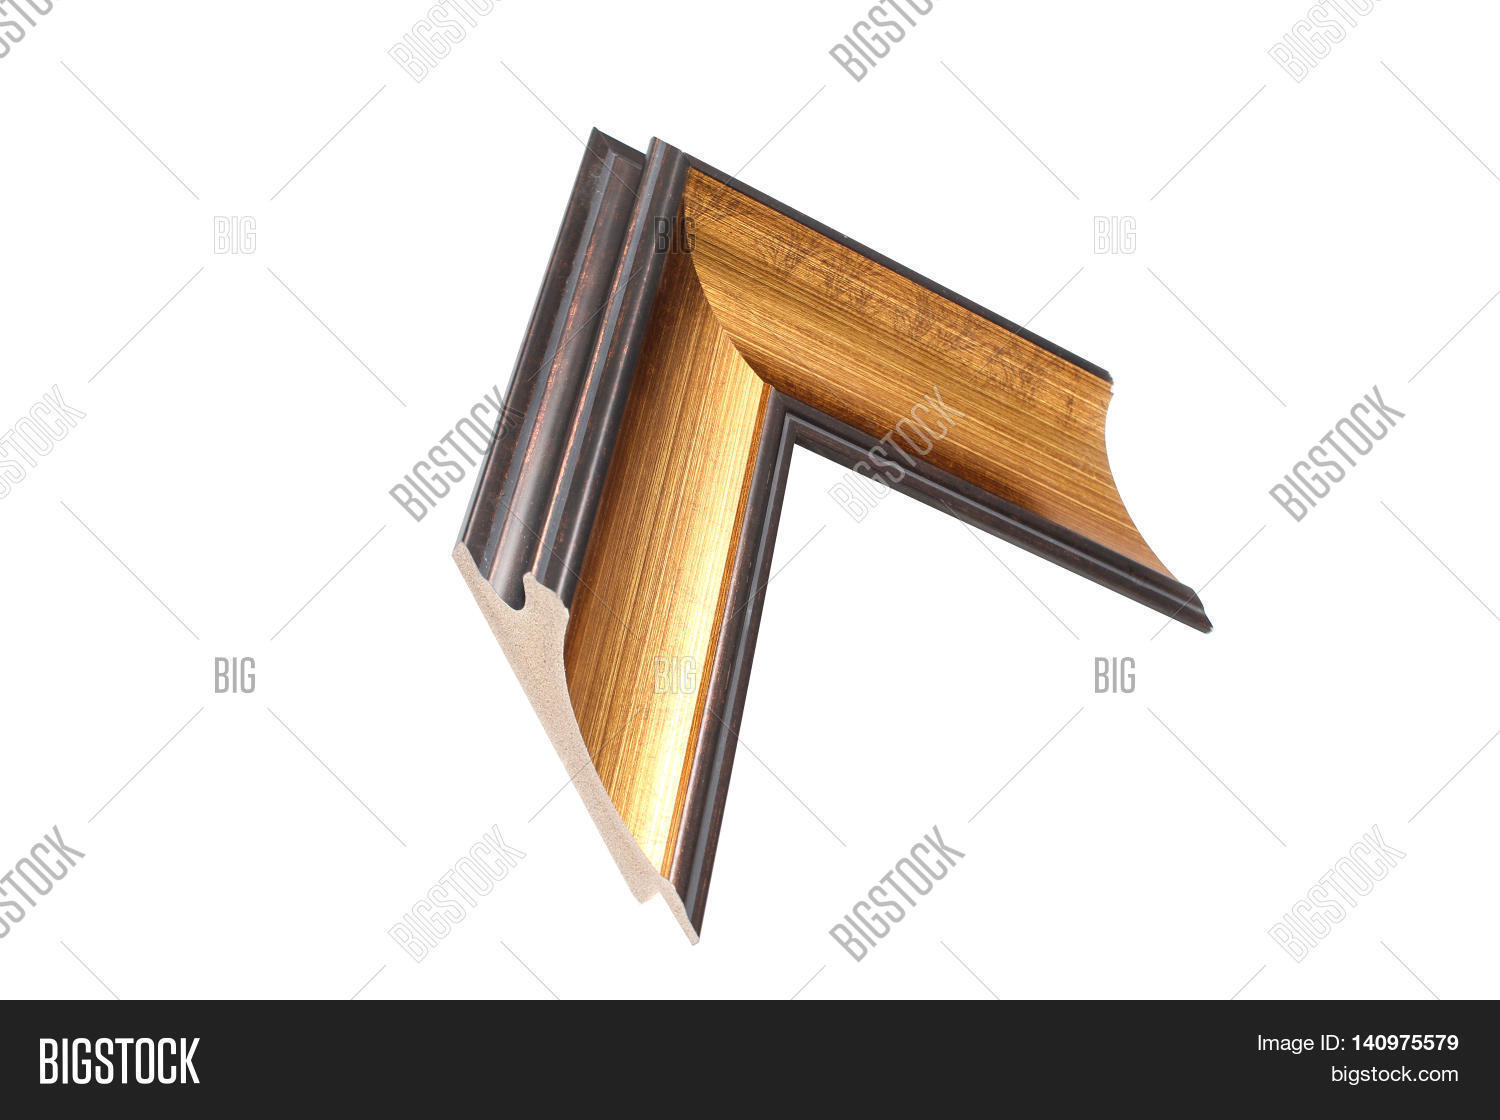 Miraculous Wooden Frame Baguette Image Photo Free Trial Bigstock Cjindustries Chair Design For Home Cjindustriesco